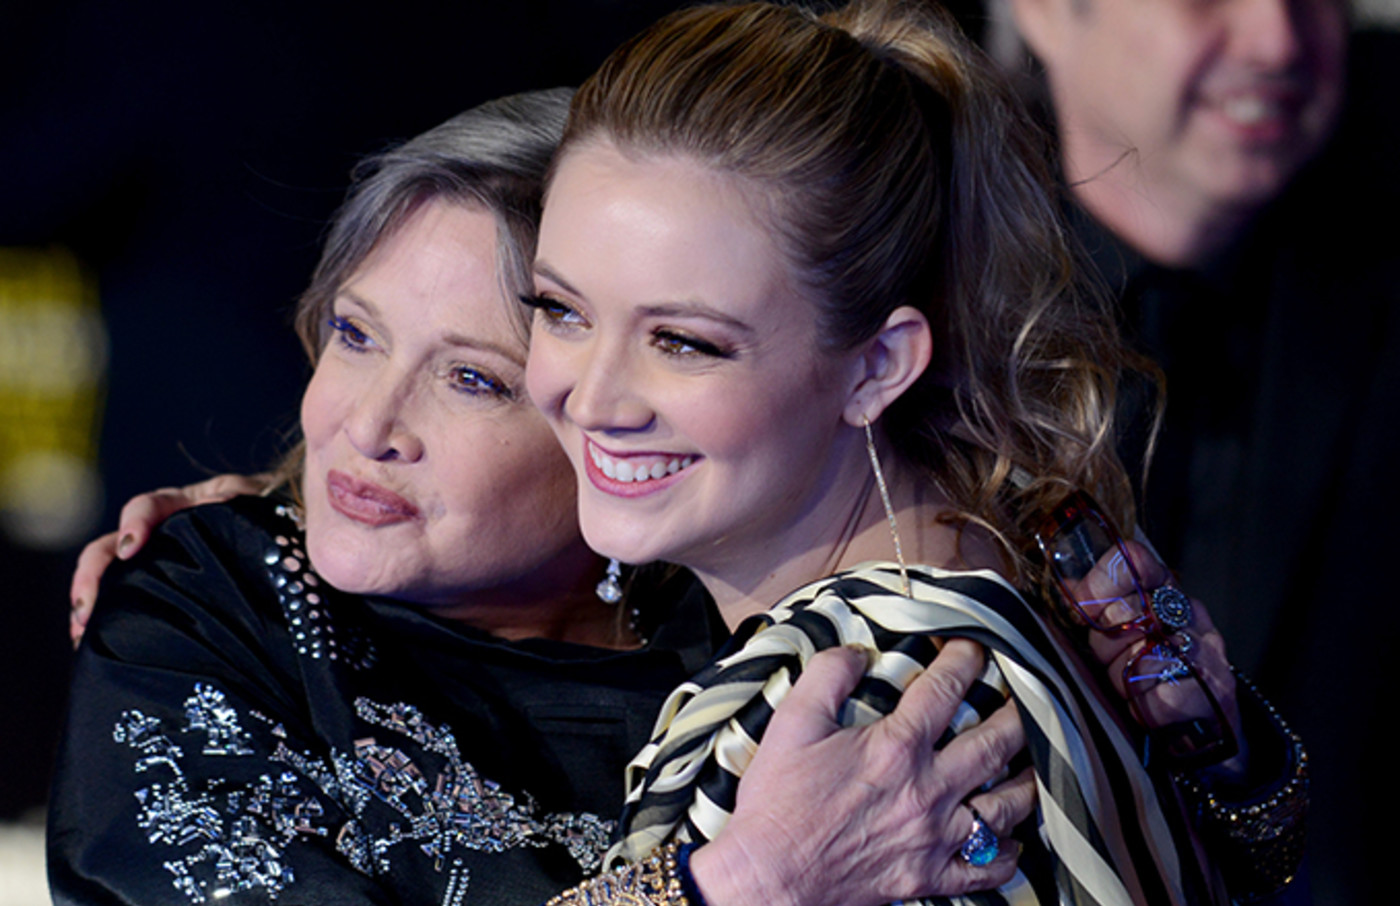 Carrie Fisher S Daughter Billie Lourd Played Her Stand In For The Rise Of Skywalker Complex